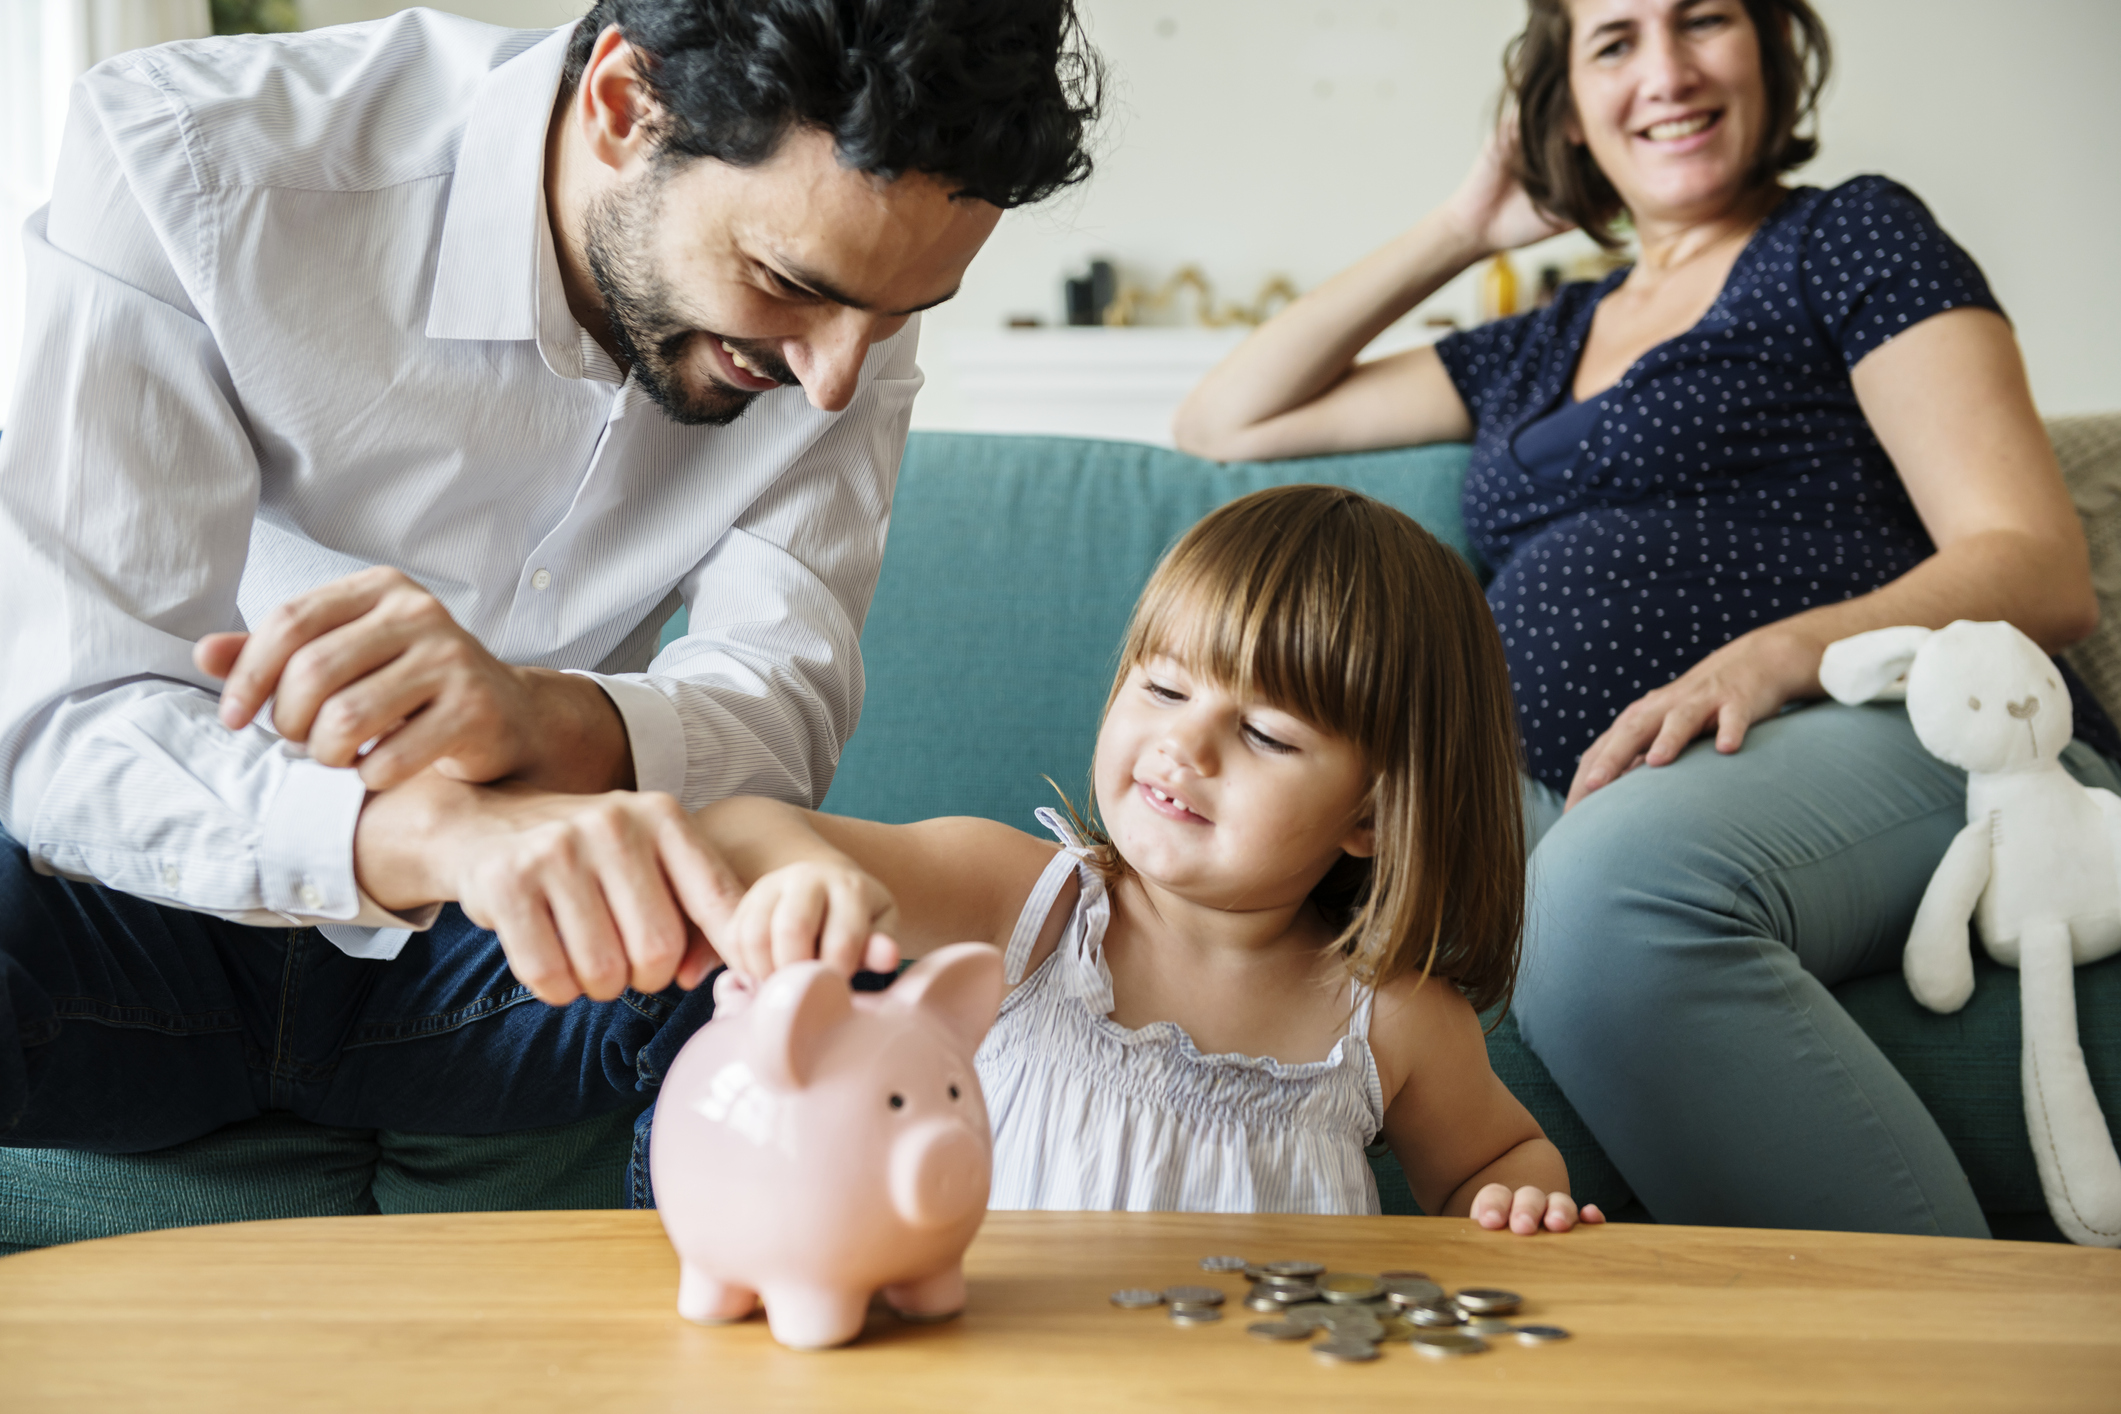 family budgeting on couch, piggy bank, counting money, young girl